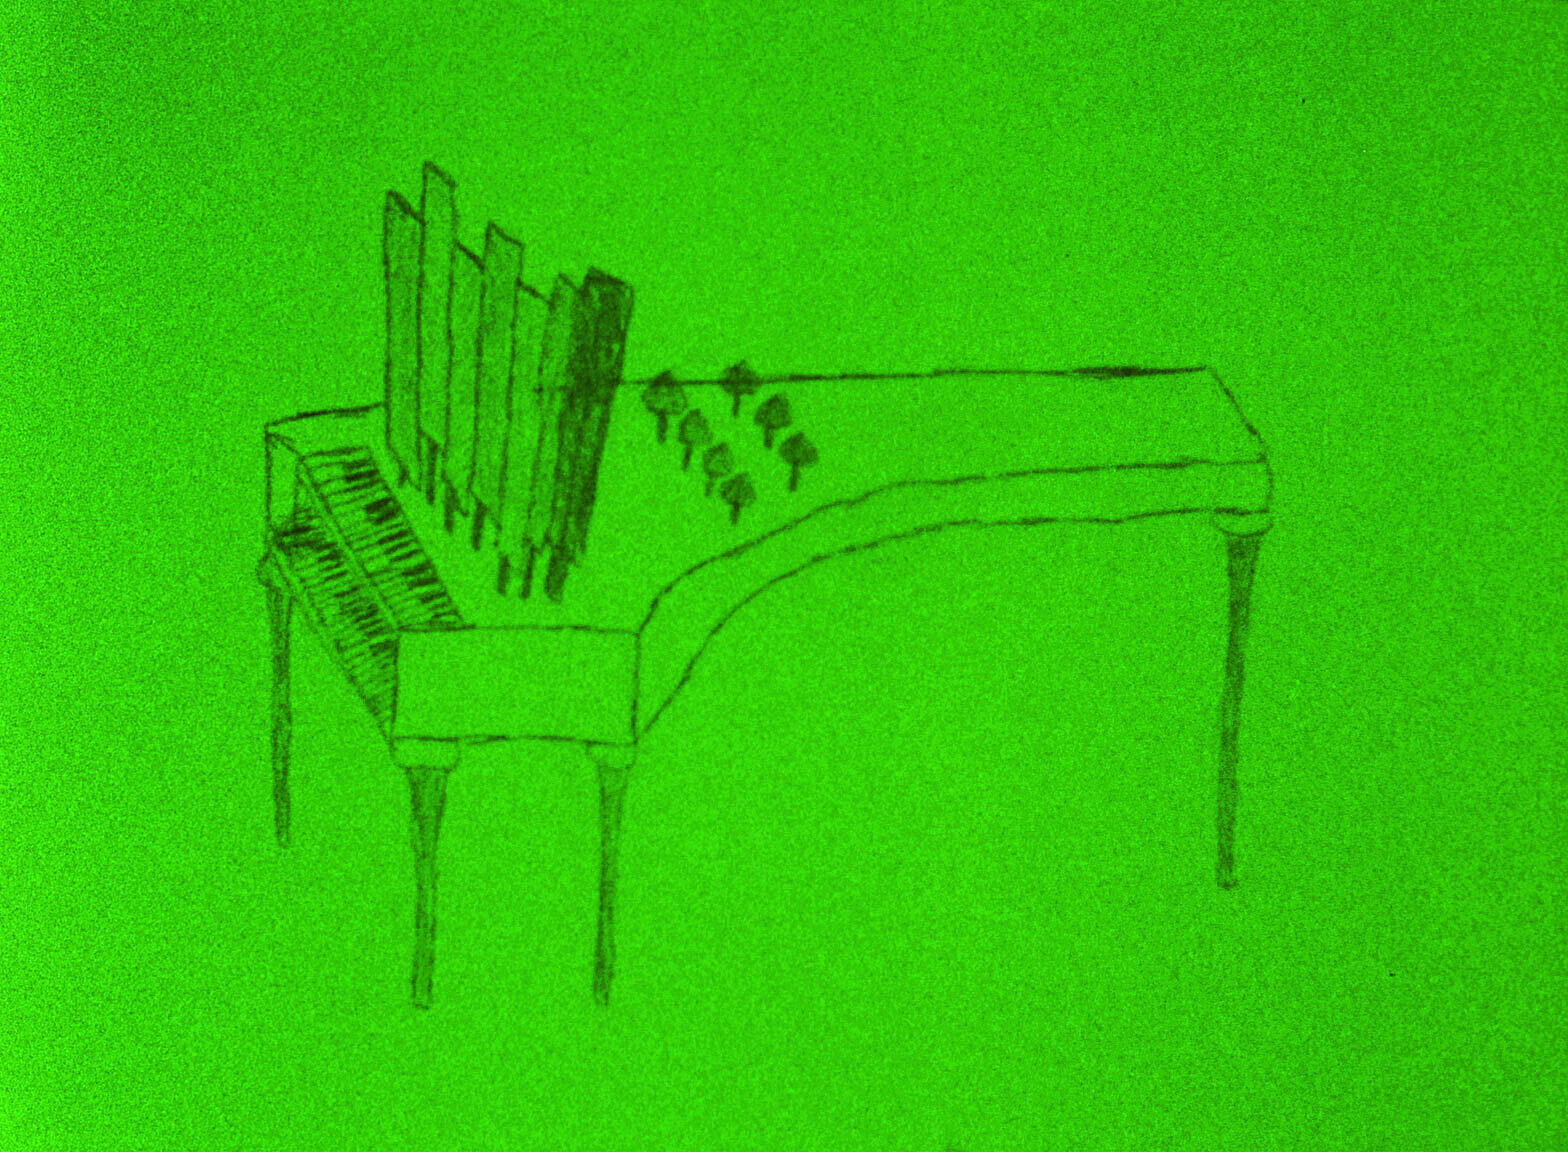 A still from a film work by Jenny Perlin. A sketch of a piano with sheet music is depicted against a vivid green background